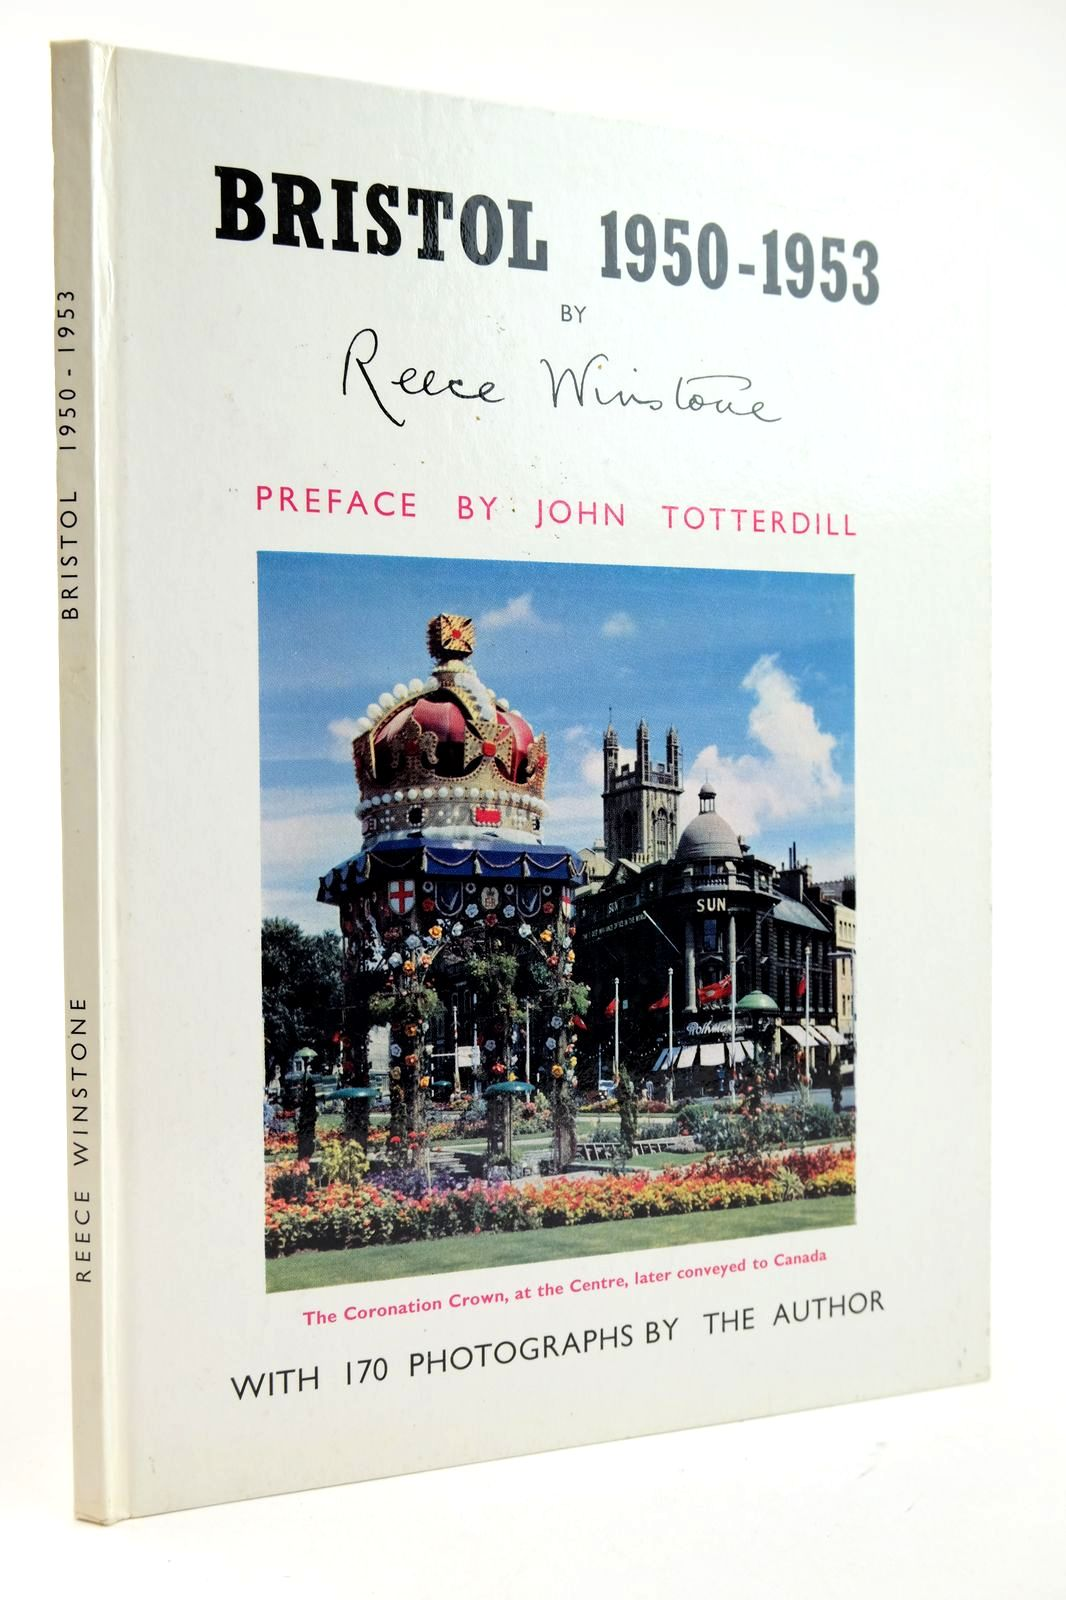 Photo of BRISTOL 1950-1953 written by Winstone, Reece published by Reece Winstone (STOCK CODE: 2132634)  for sale by Stella & Rose's Books